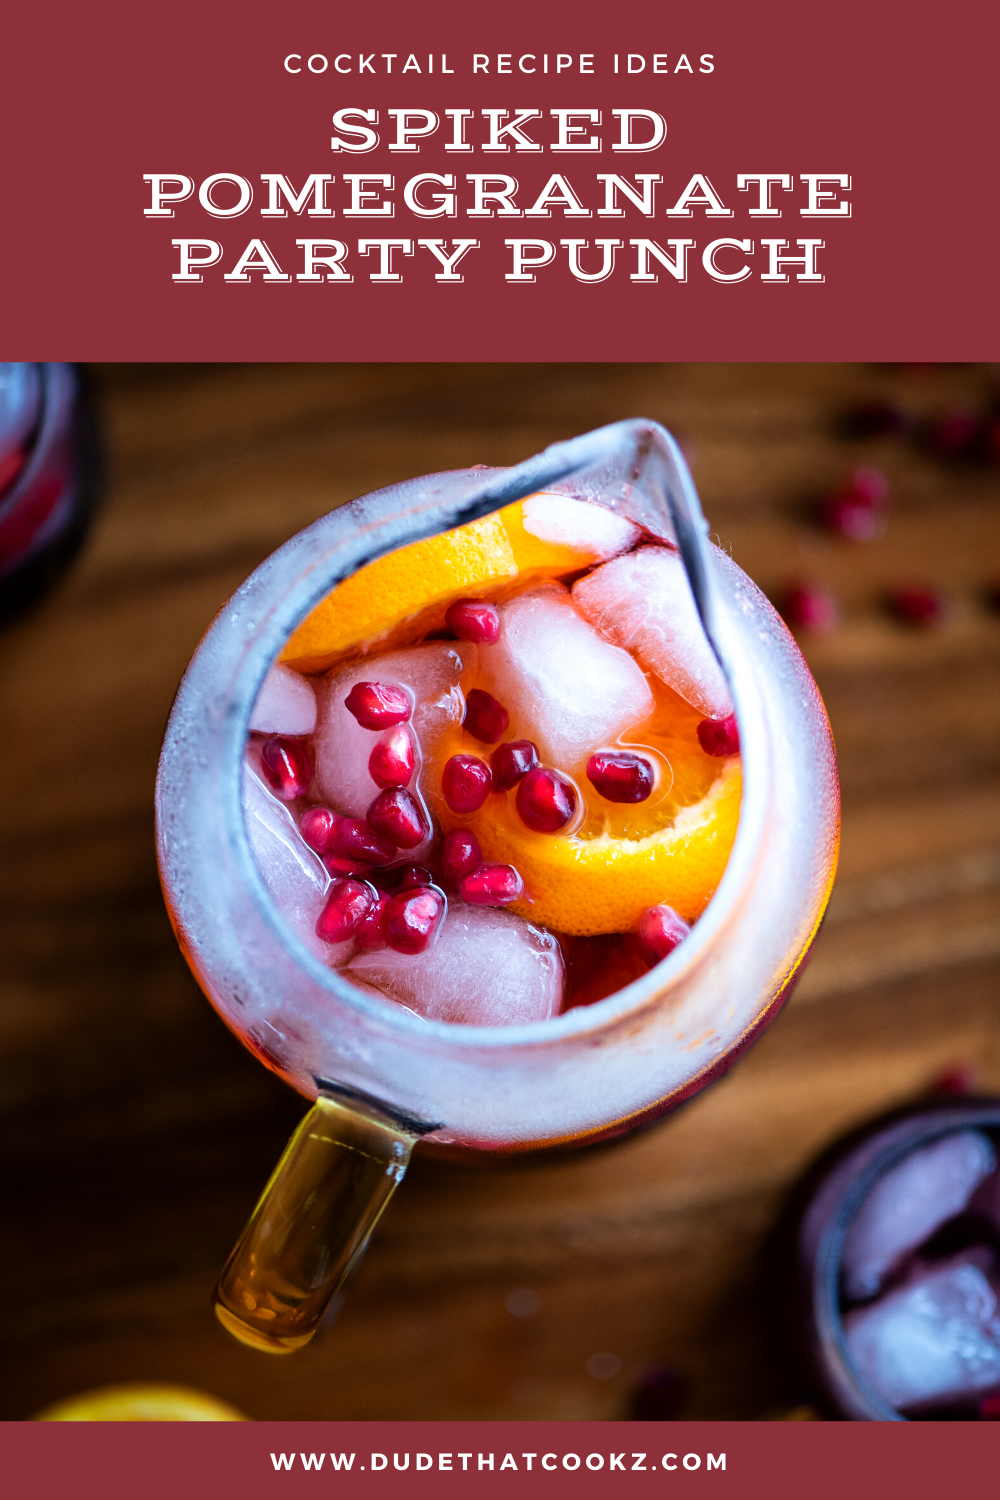 Spiked Pomegranate Party Punch